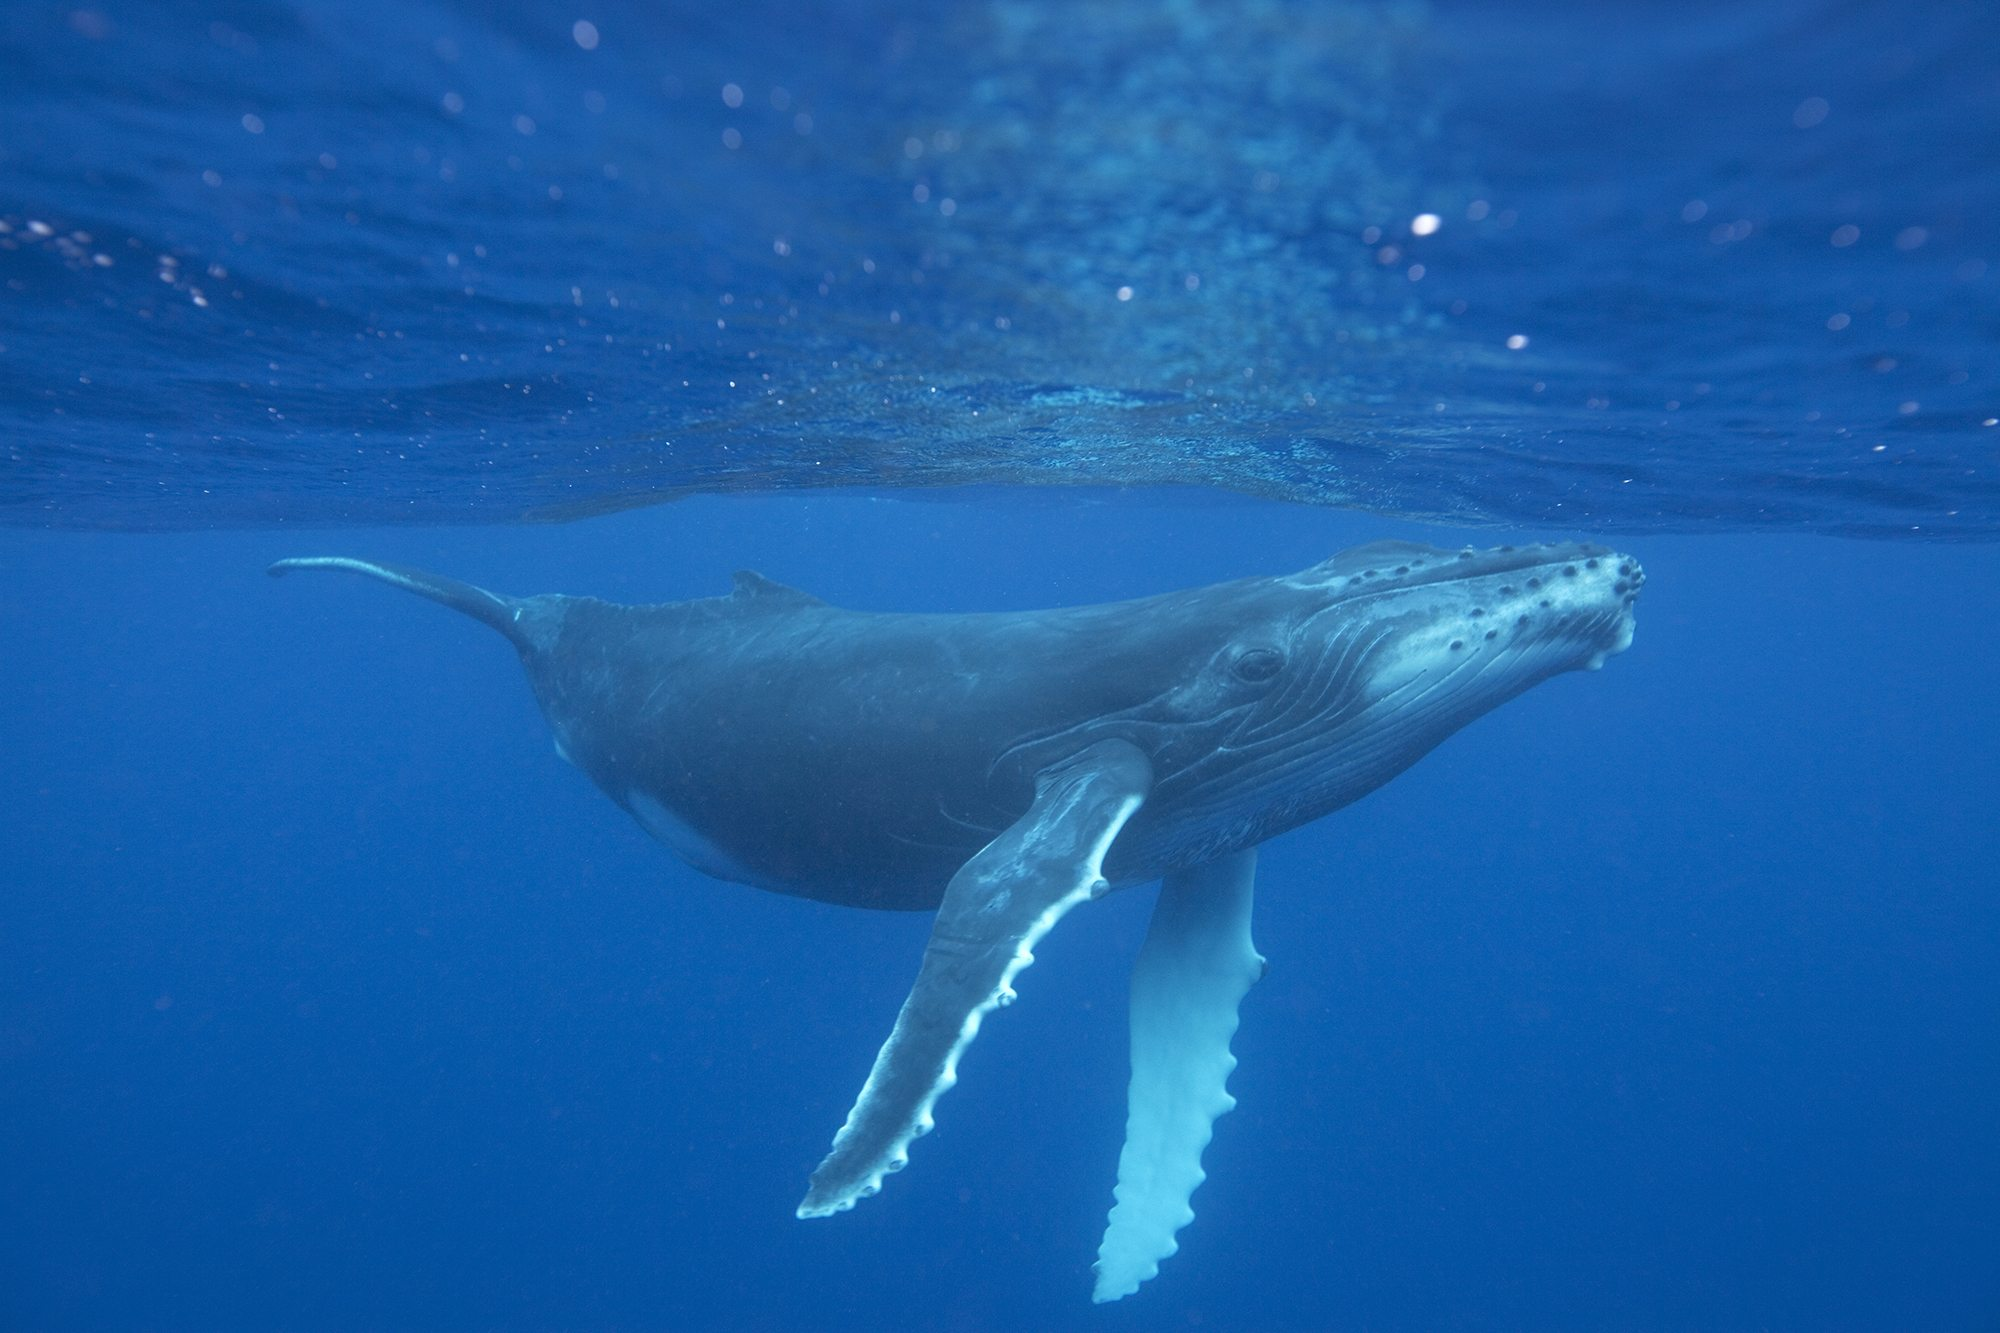 Humpback whale - Whale & Dolphin Conservation Australia